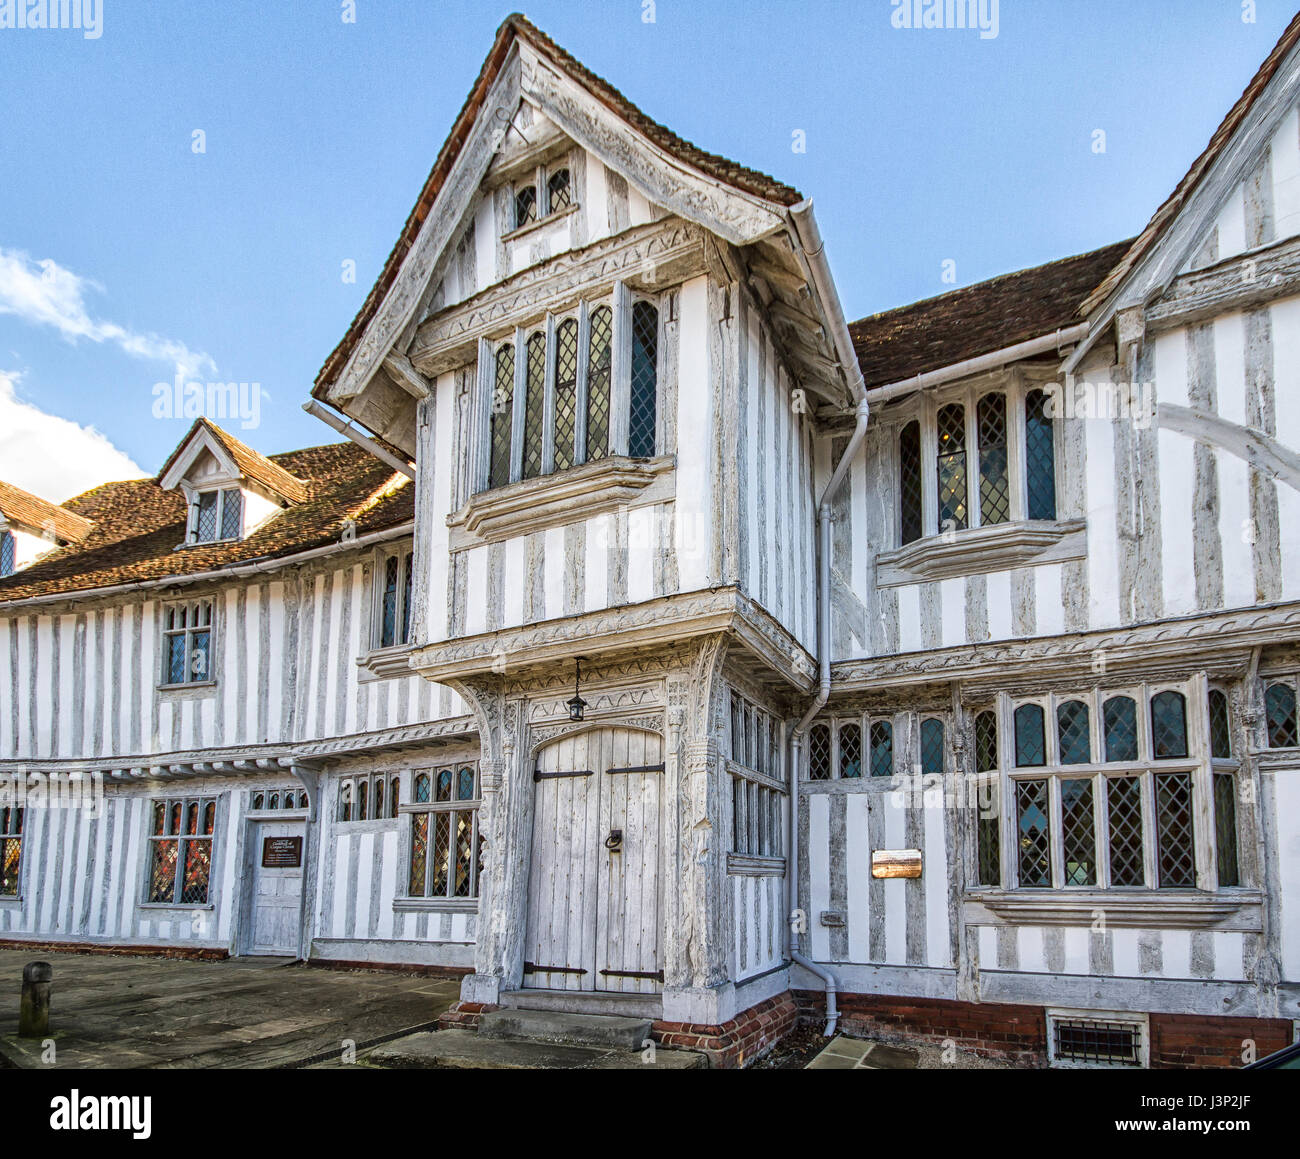 Half timbered Guildhall in Lavenham, Suffolk dating from the sixteenth century. - Stock Image